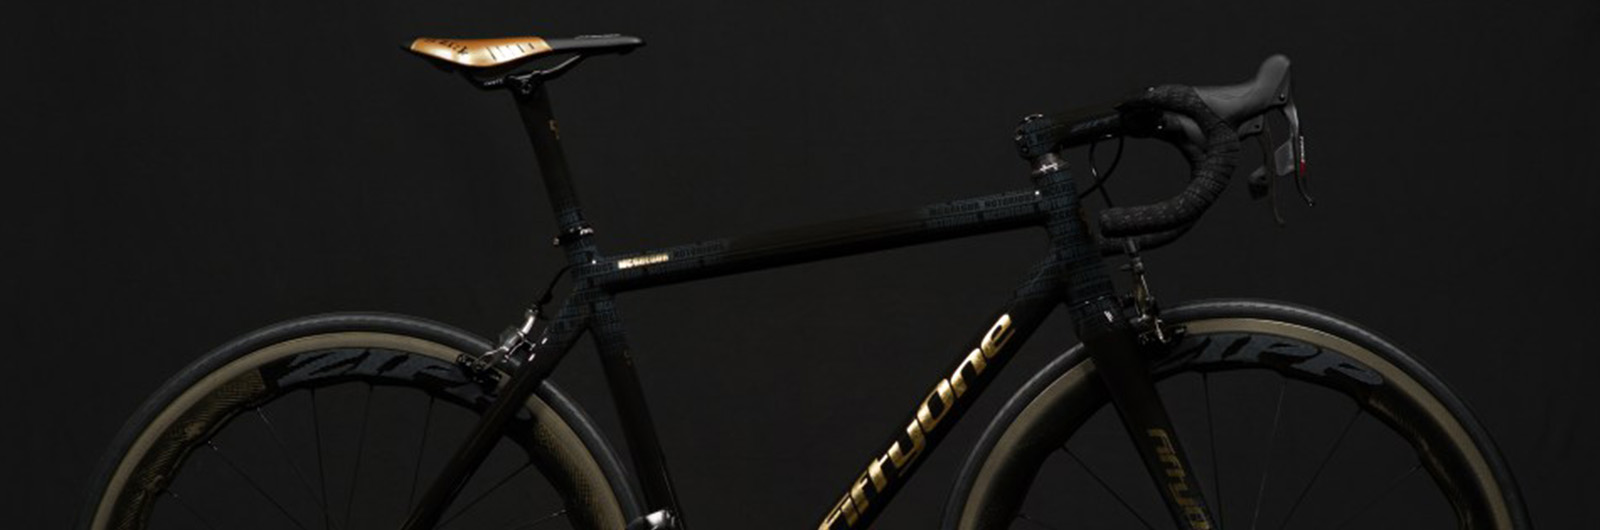 Hey, There Goes Conor McGregor On His New Custom FiftyOne Bicycle